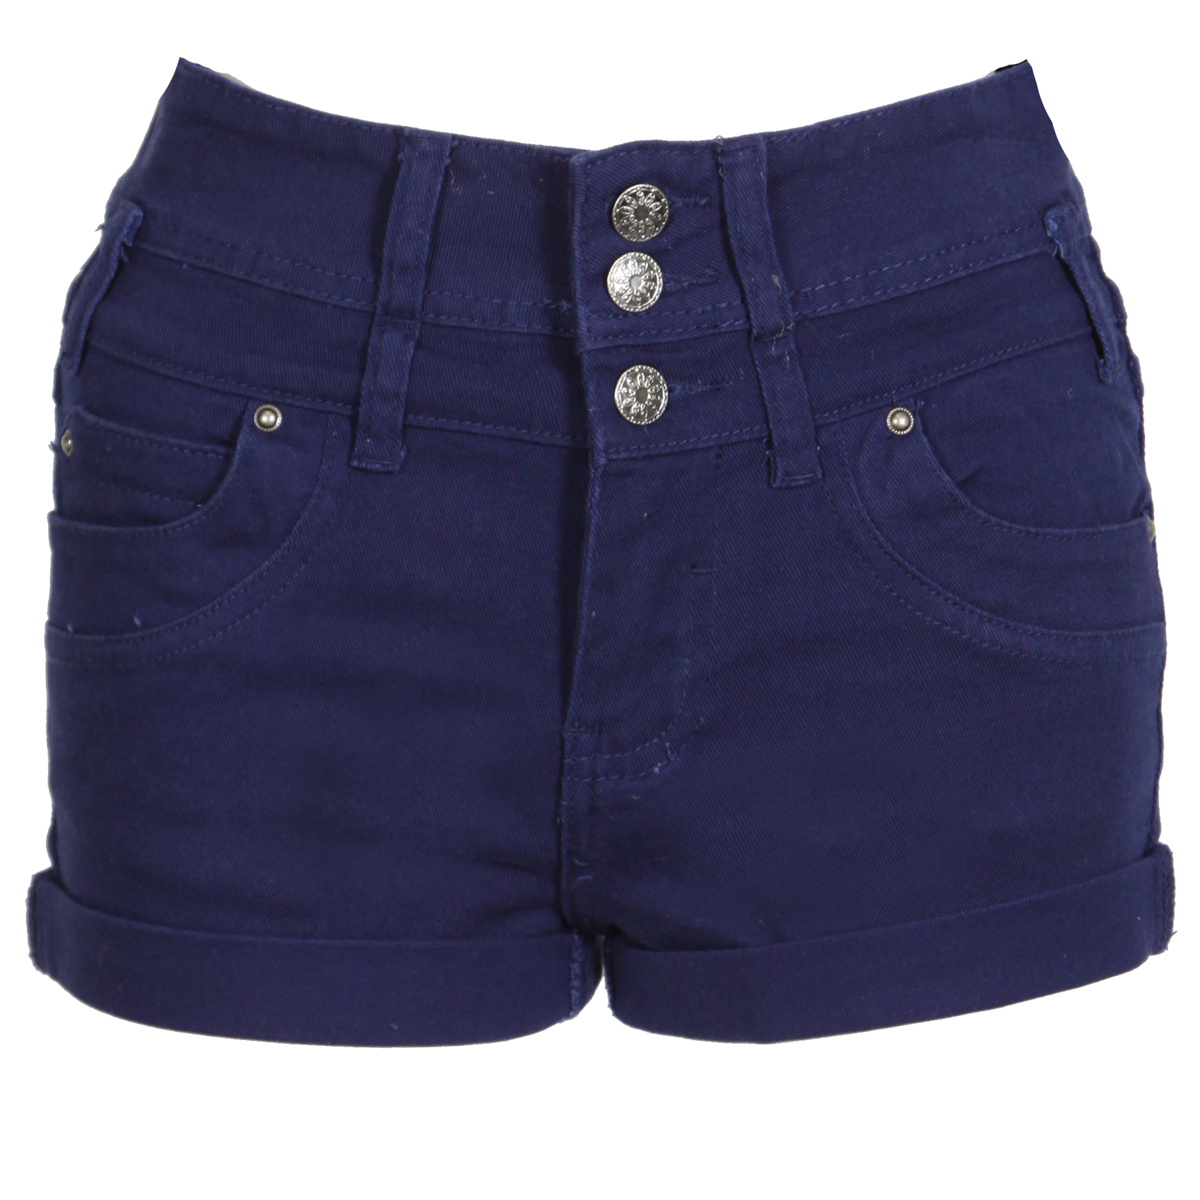 NEW WOMENS NAVY BLUE DENIM SHORTS HIGH WAIST HOT PANTS HOTPANTS LADIES CASUAL Enlarged Preview